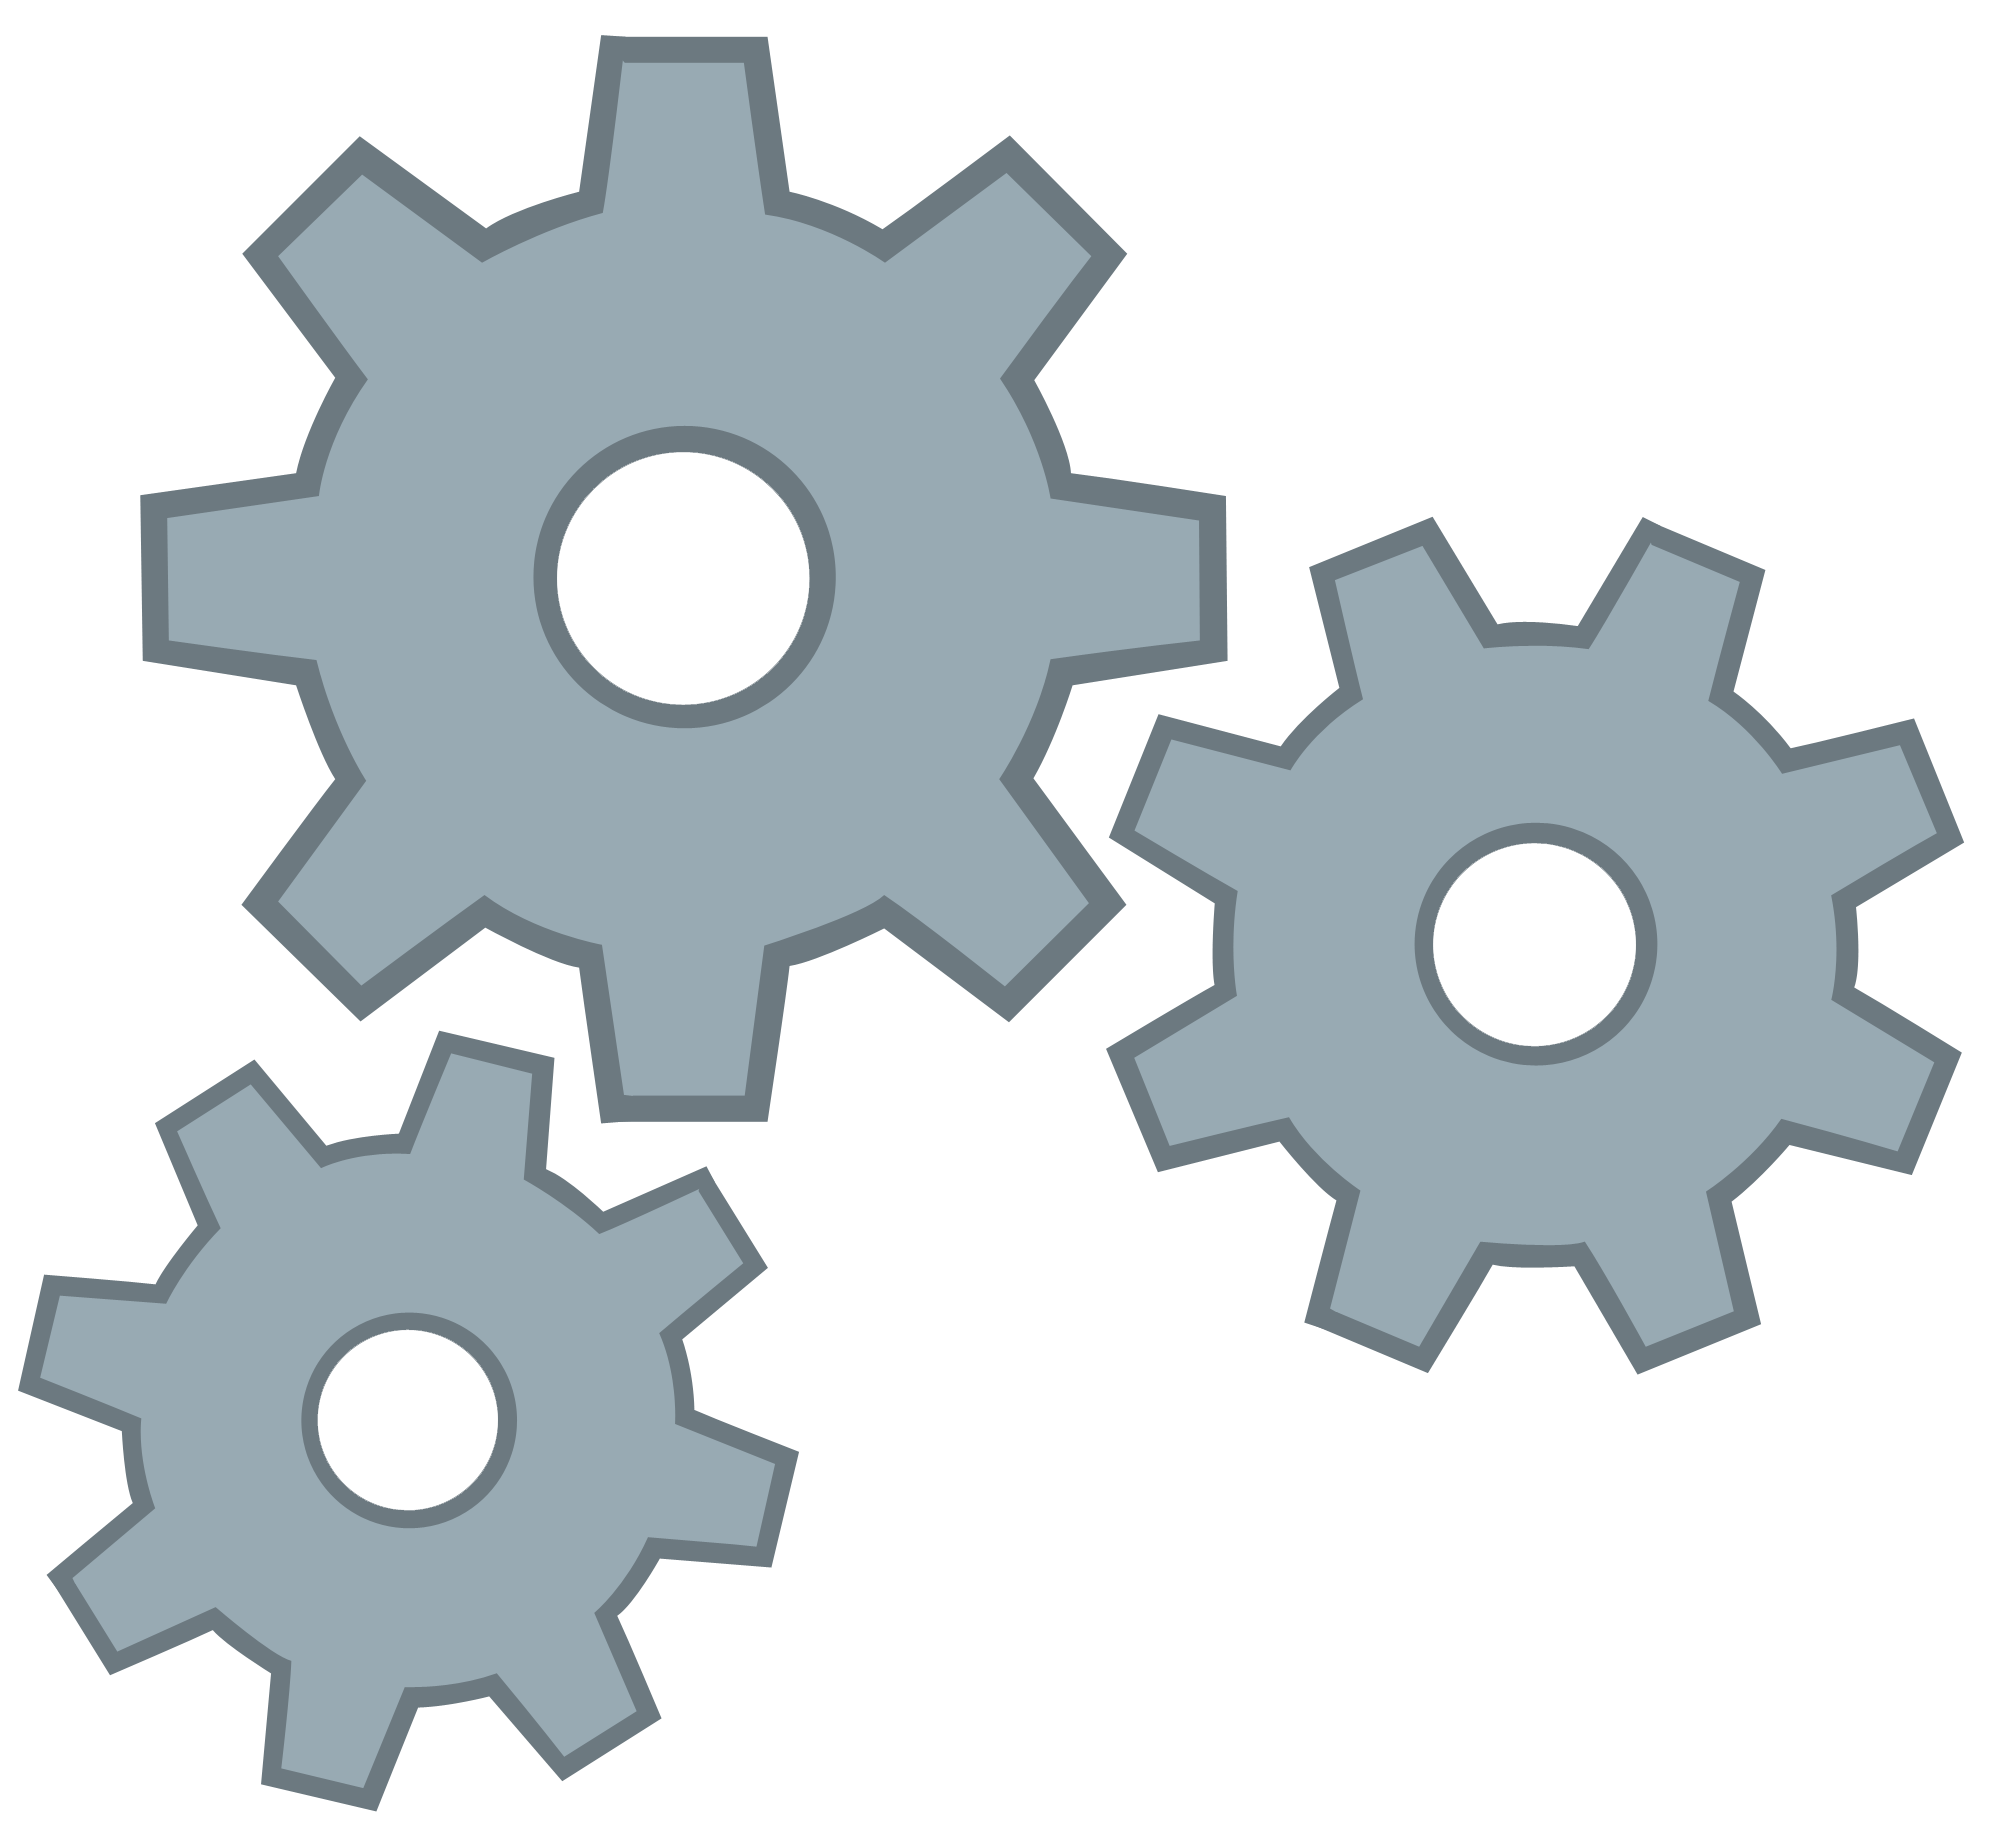 Png images transparent free. Gears clipart car gear